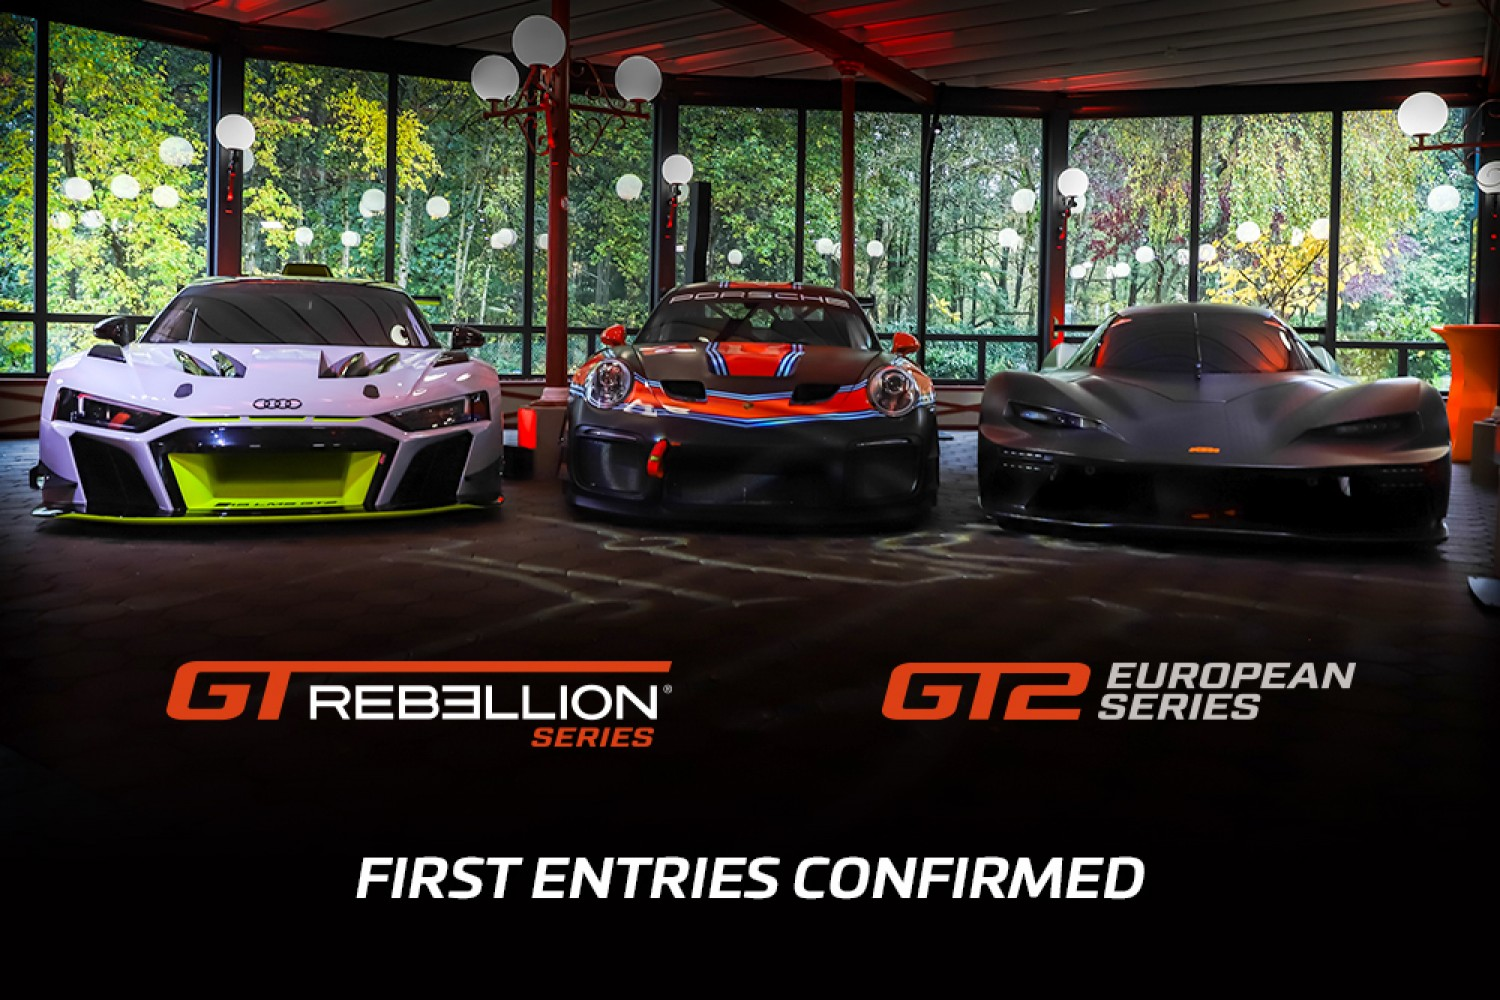 First eight teams confirm their entries across GT2 European and GT Rebellion Series